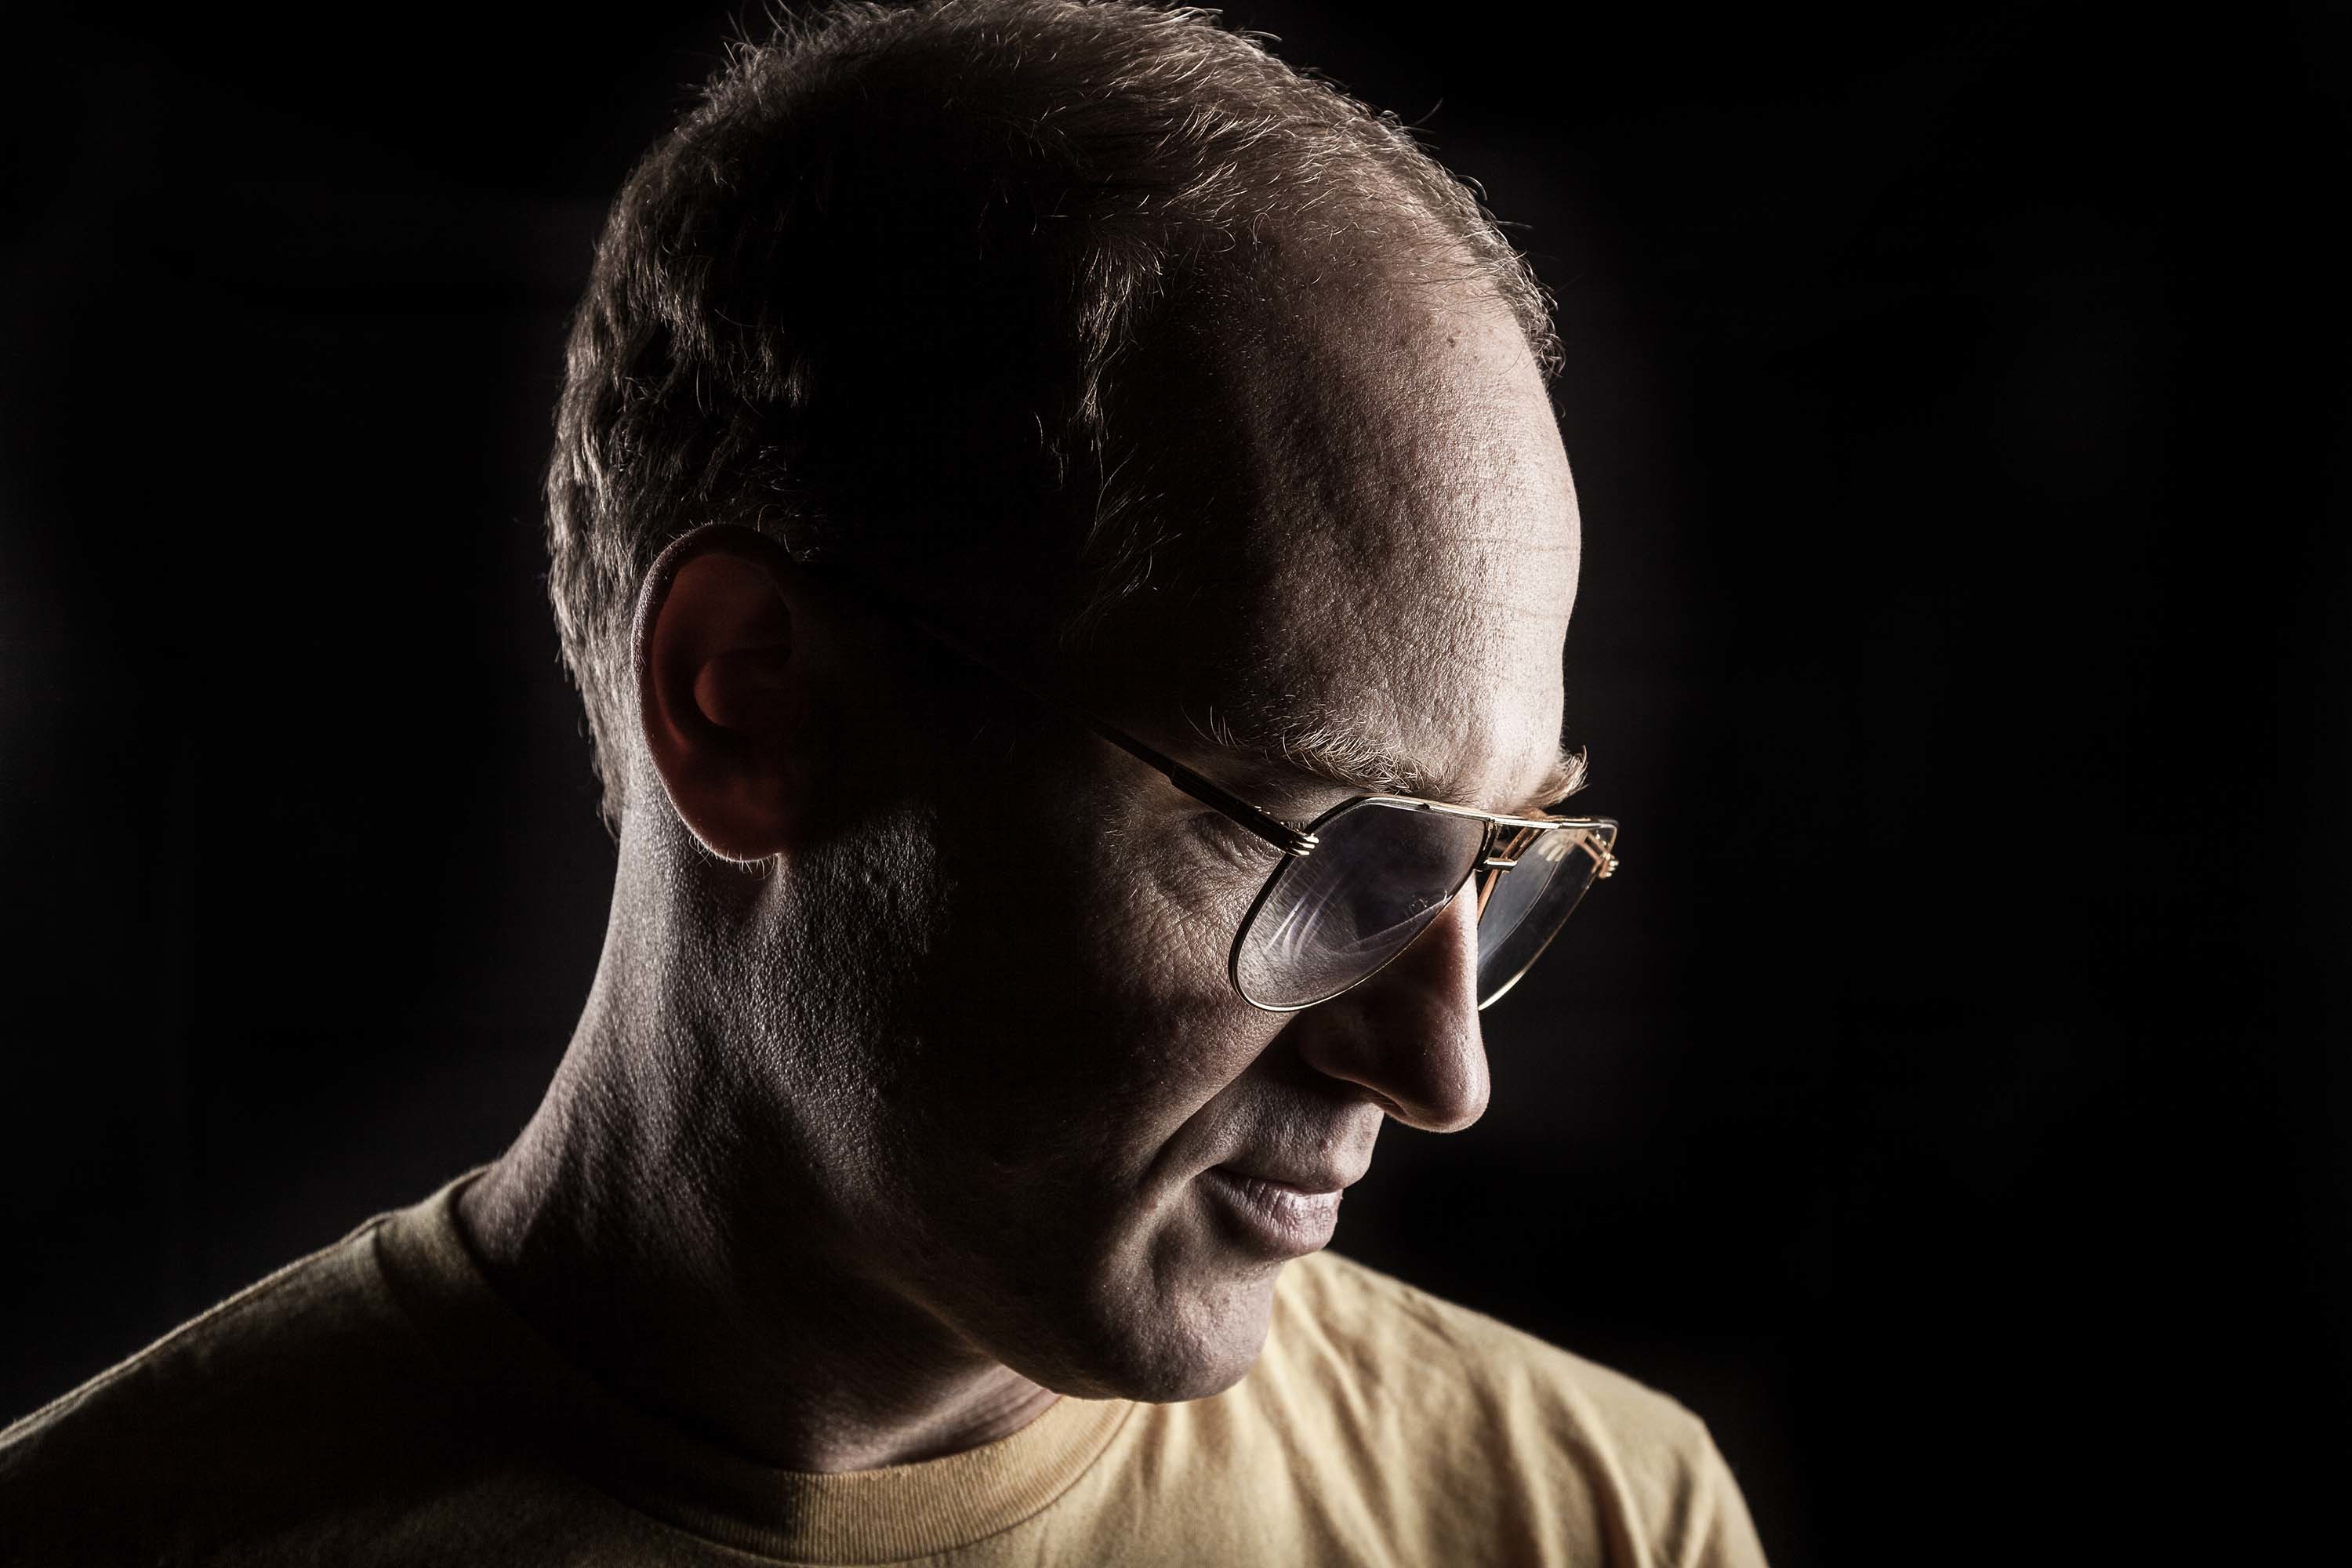 Dan Snaith shares new music as Daphni, in the shape of shimmering new 'Sizzling' EP